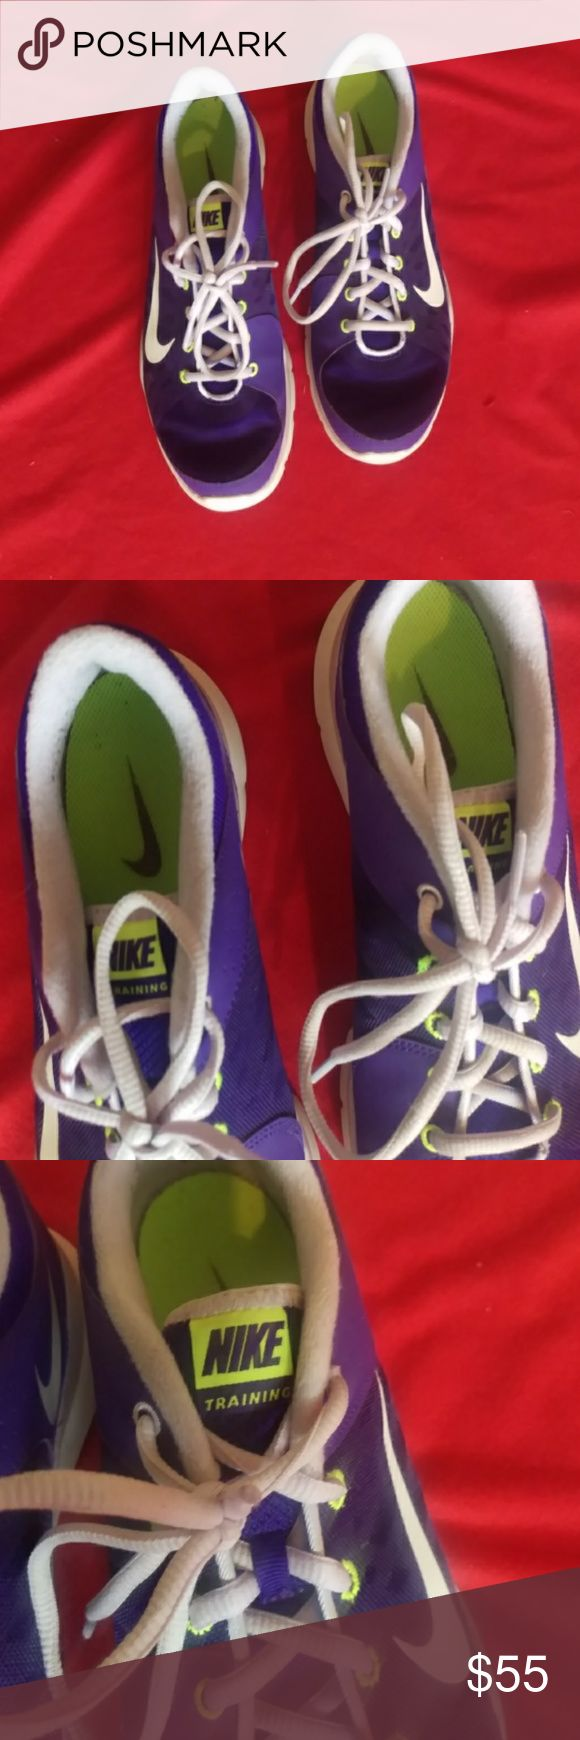 Nike training shoes Nike training shoes size 10 good condition normal wear purple /white with yellow trim Nike Shoes